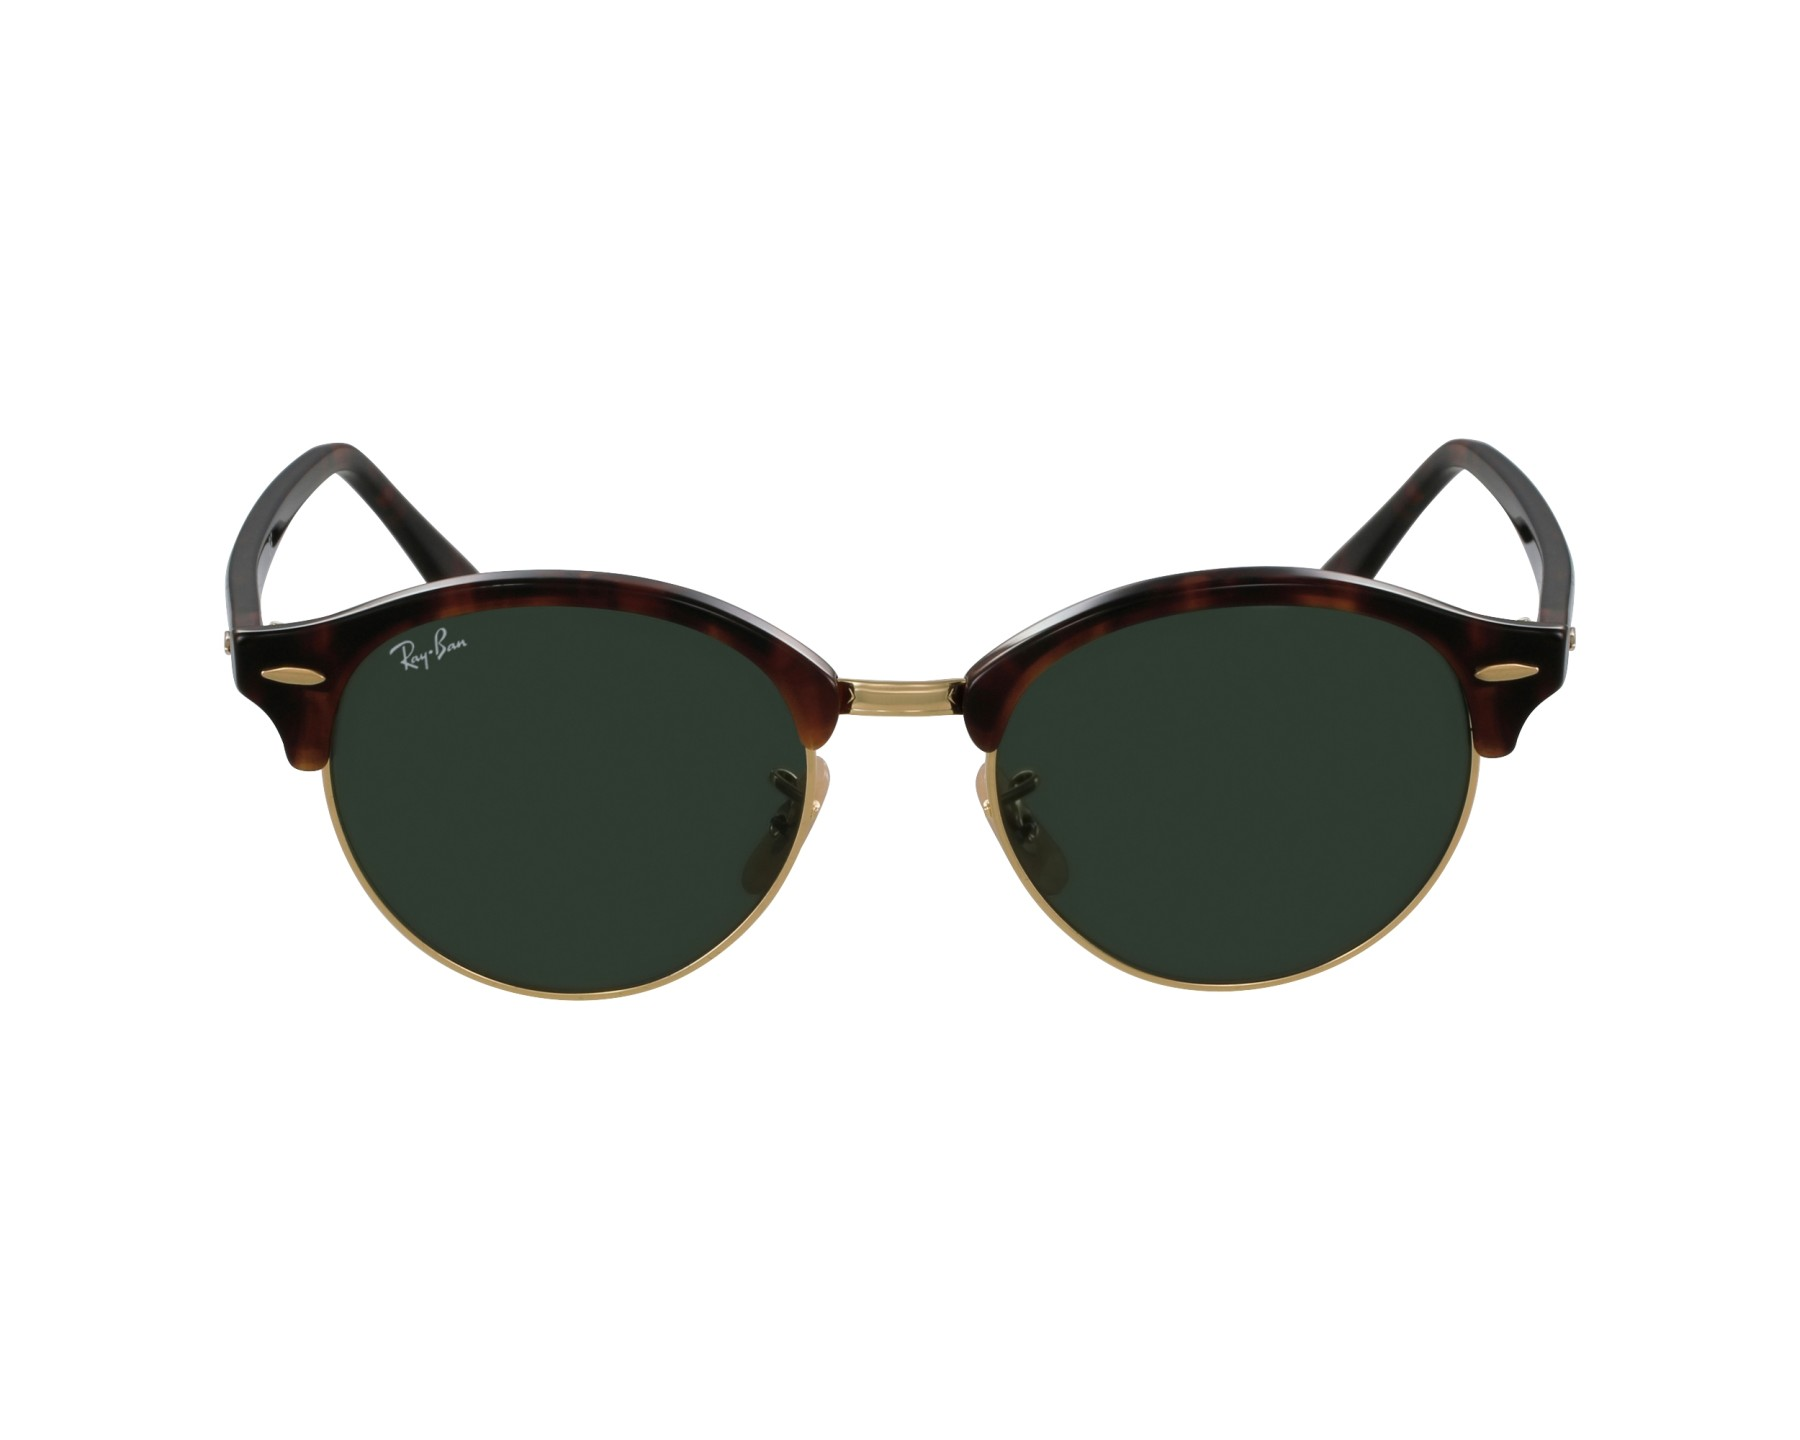 fcb0ed8b94 Sunglasses Ray-Ban RB-4246 990 51-19 Havana Gold profile view